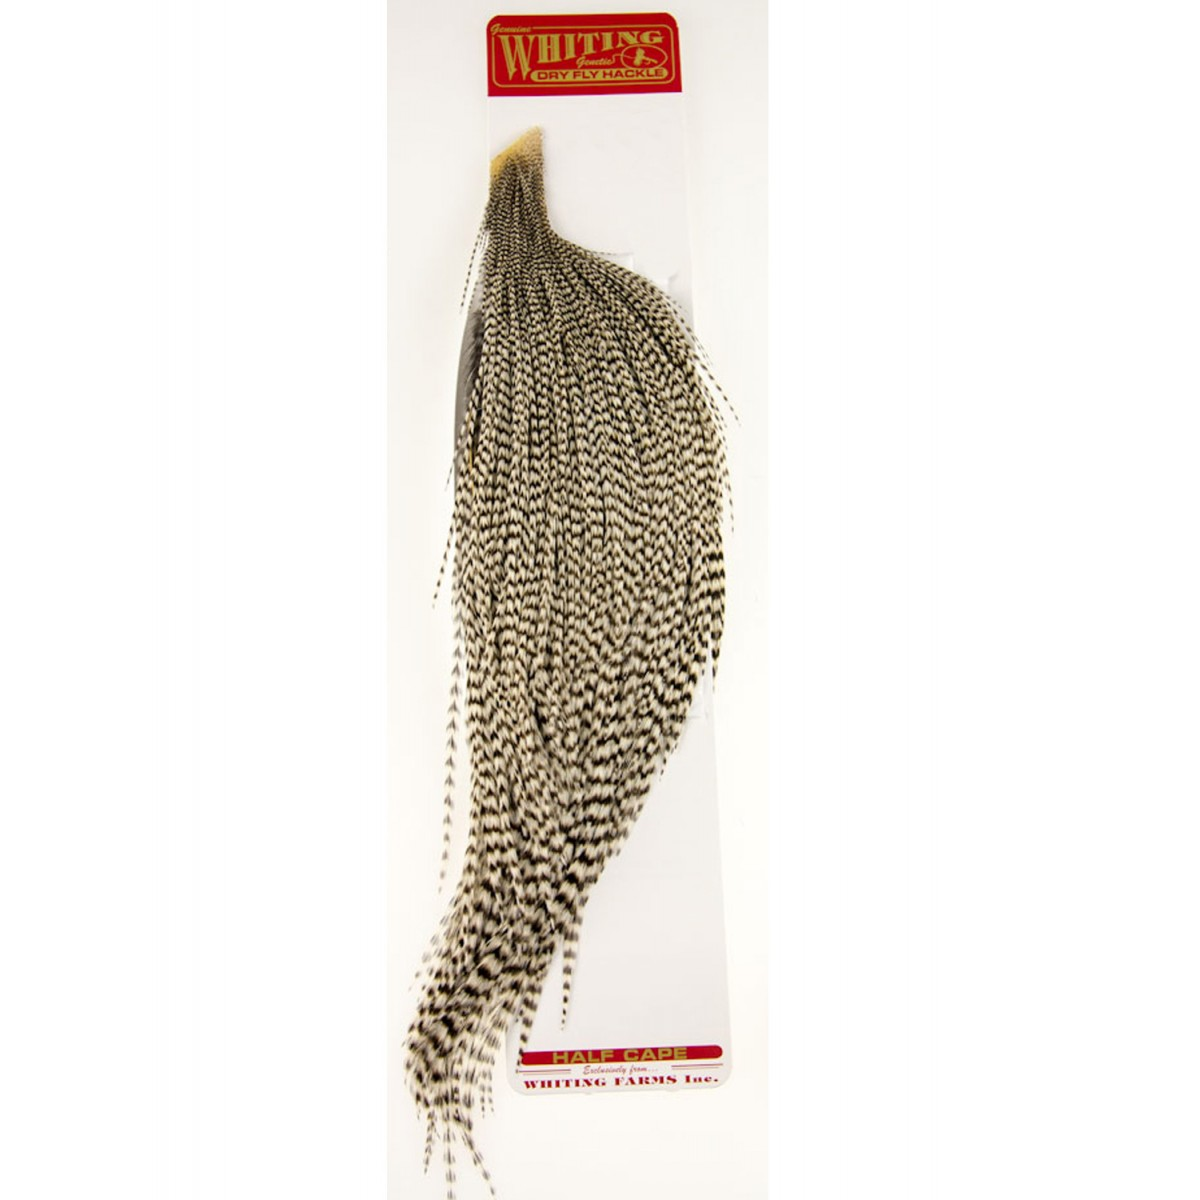 Whiting 1/2 Cape Bronce-Quality